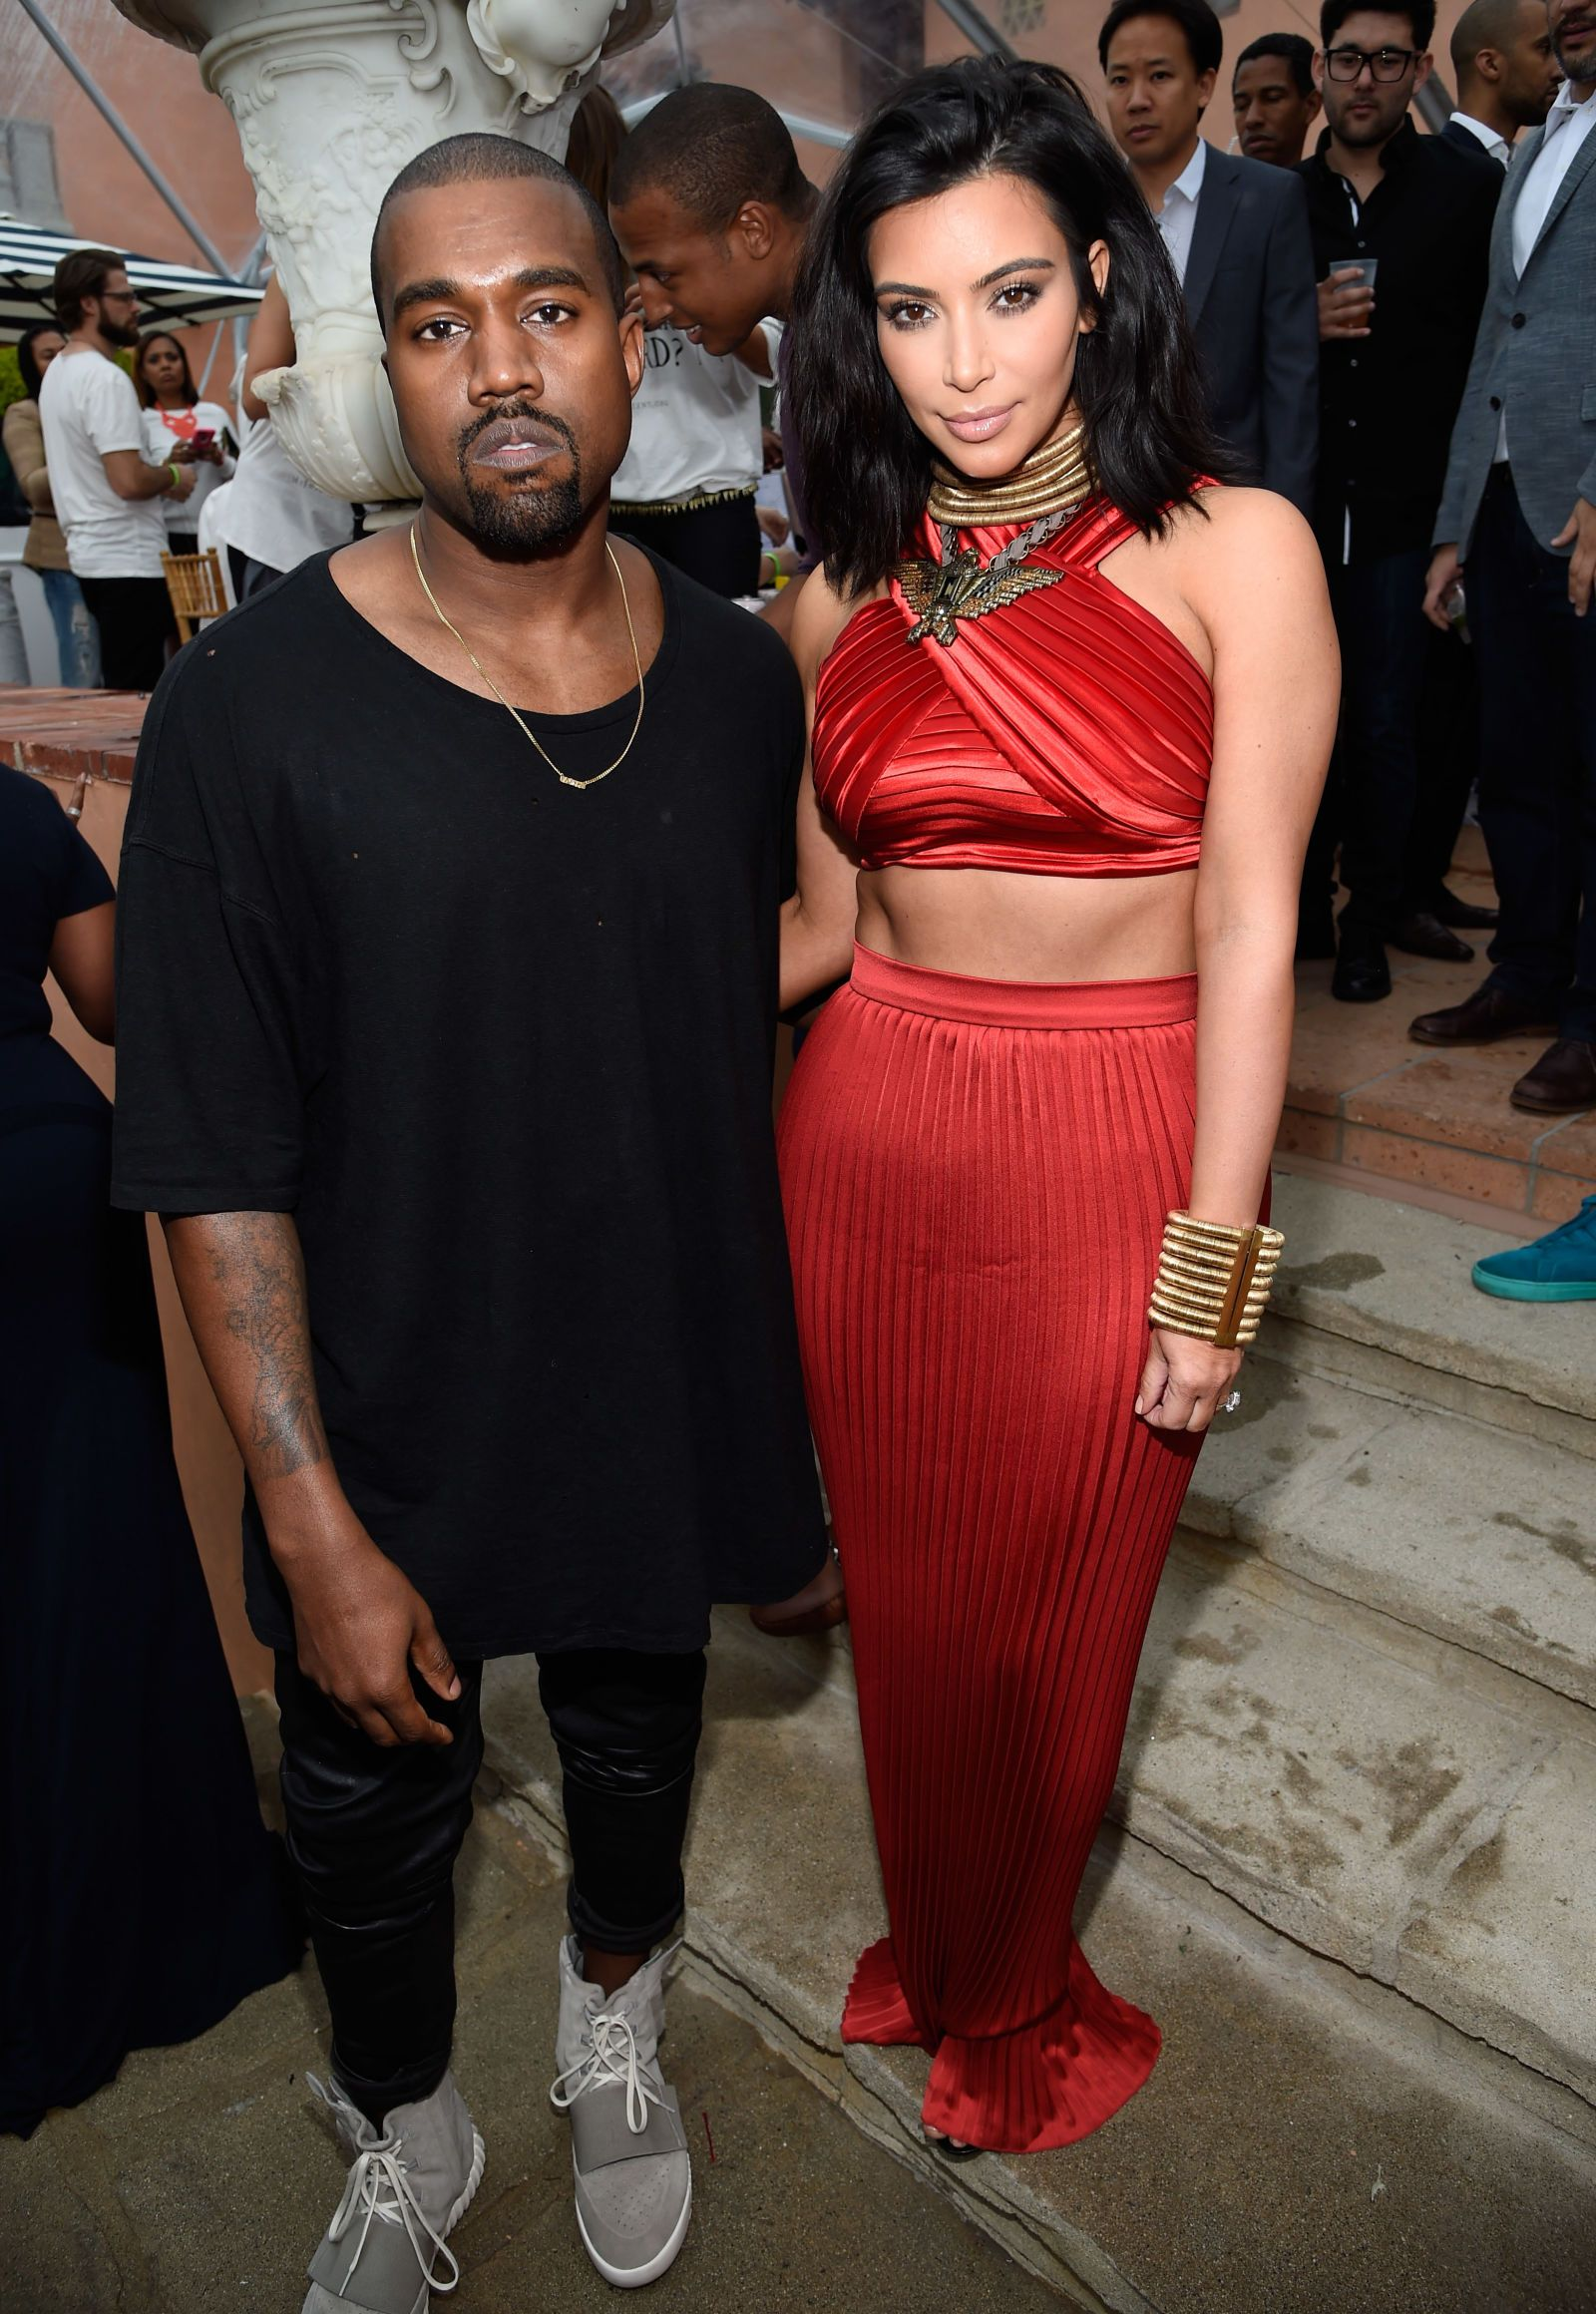 Beyonce Rihanna And Kim Kardashian Show Some Skin At Roc Nation S Pre Grammy Party Kim And Kanye Kardashian Style Kim Kardashian Show